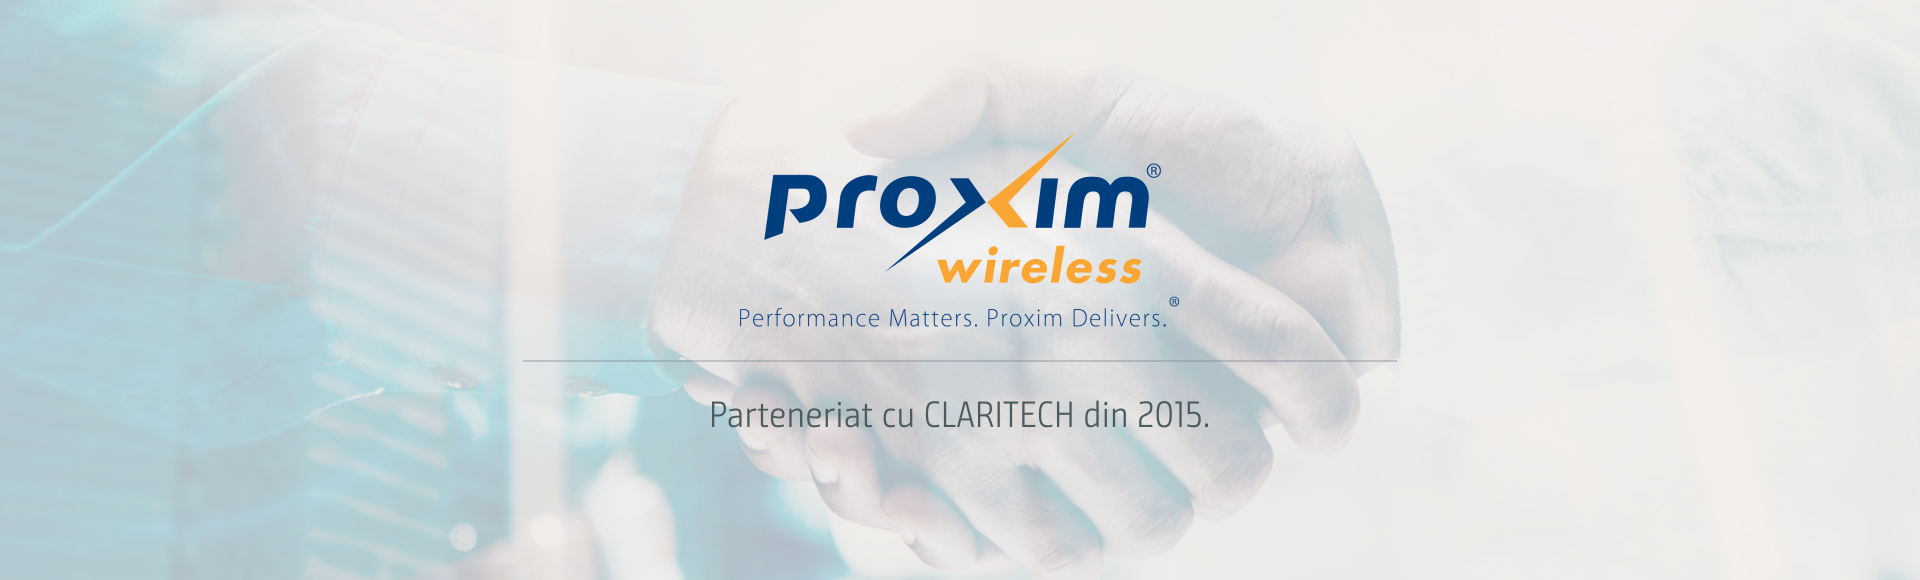 Echipamente wireless Proxim Wireless